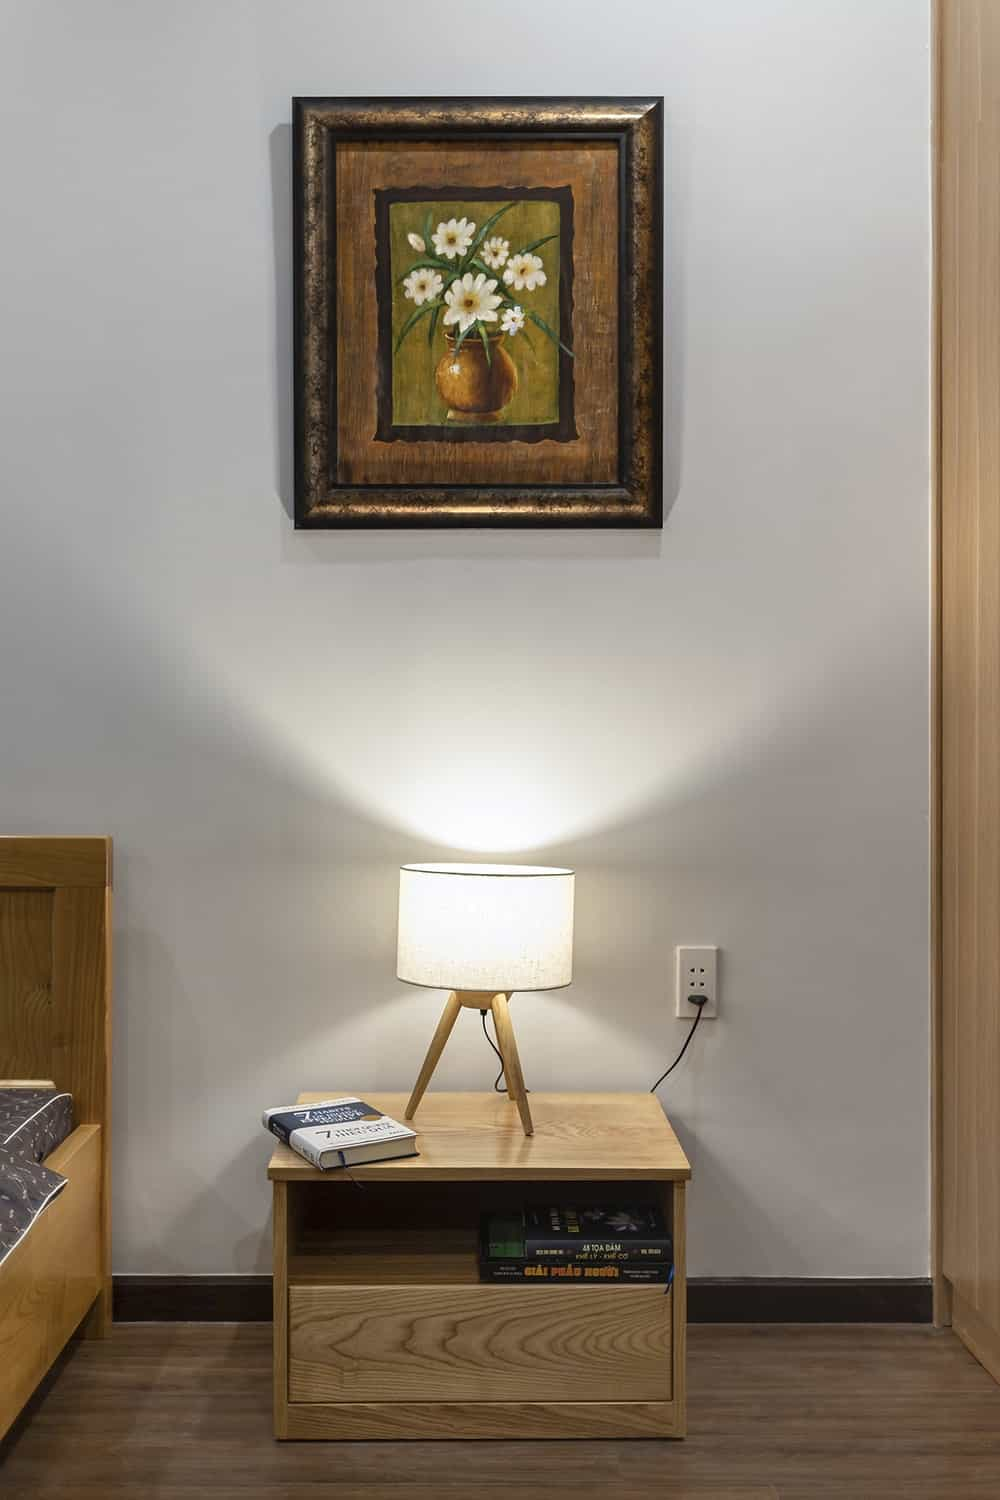 This is a close look at the wooden bedside table topped with a table lamp and a painting.